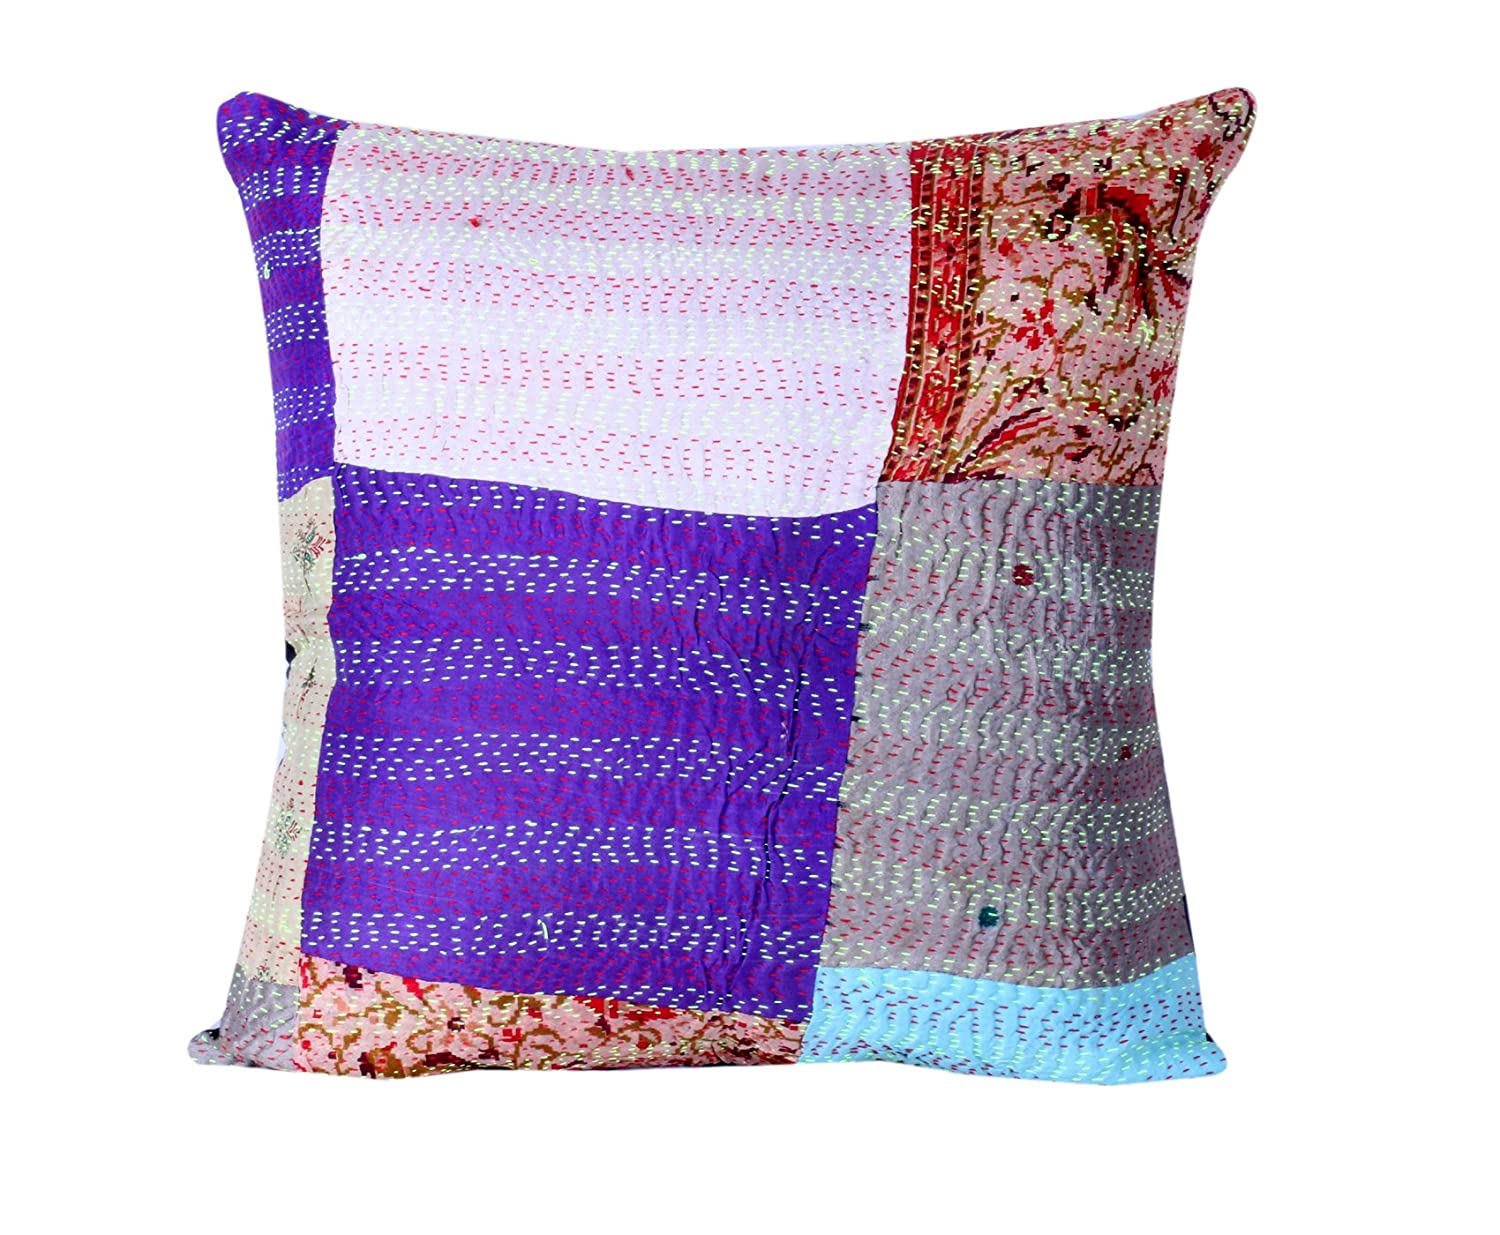 16 x 16 Inch Decorative Cushion Covers Indistar Set of 2 Throw Pillow Cover Silk Patchwork Cushion Covers with Traditional Indian Kantha Work